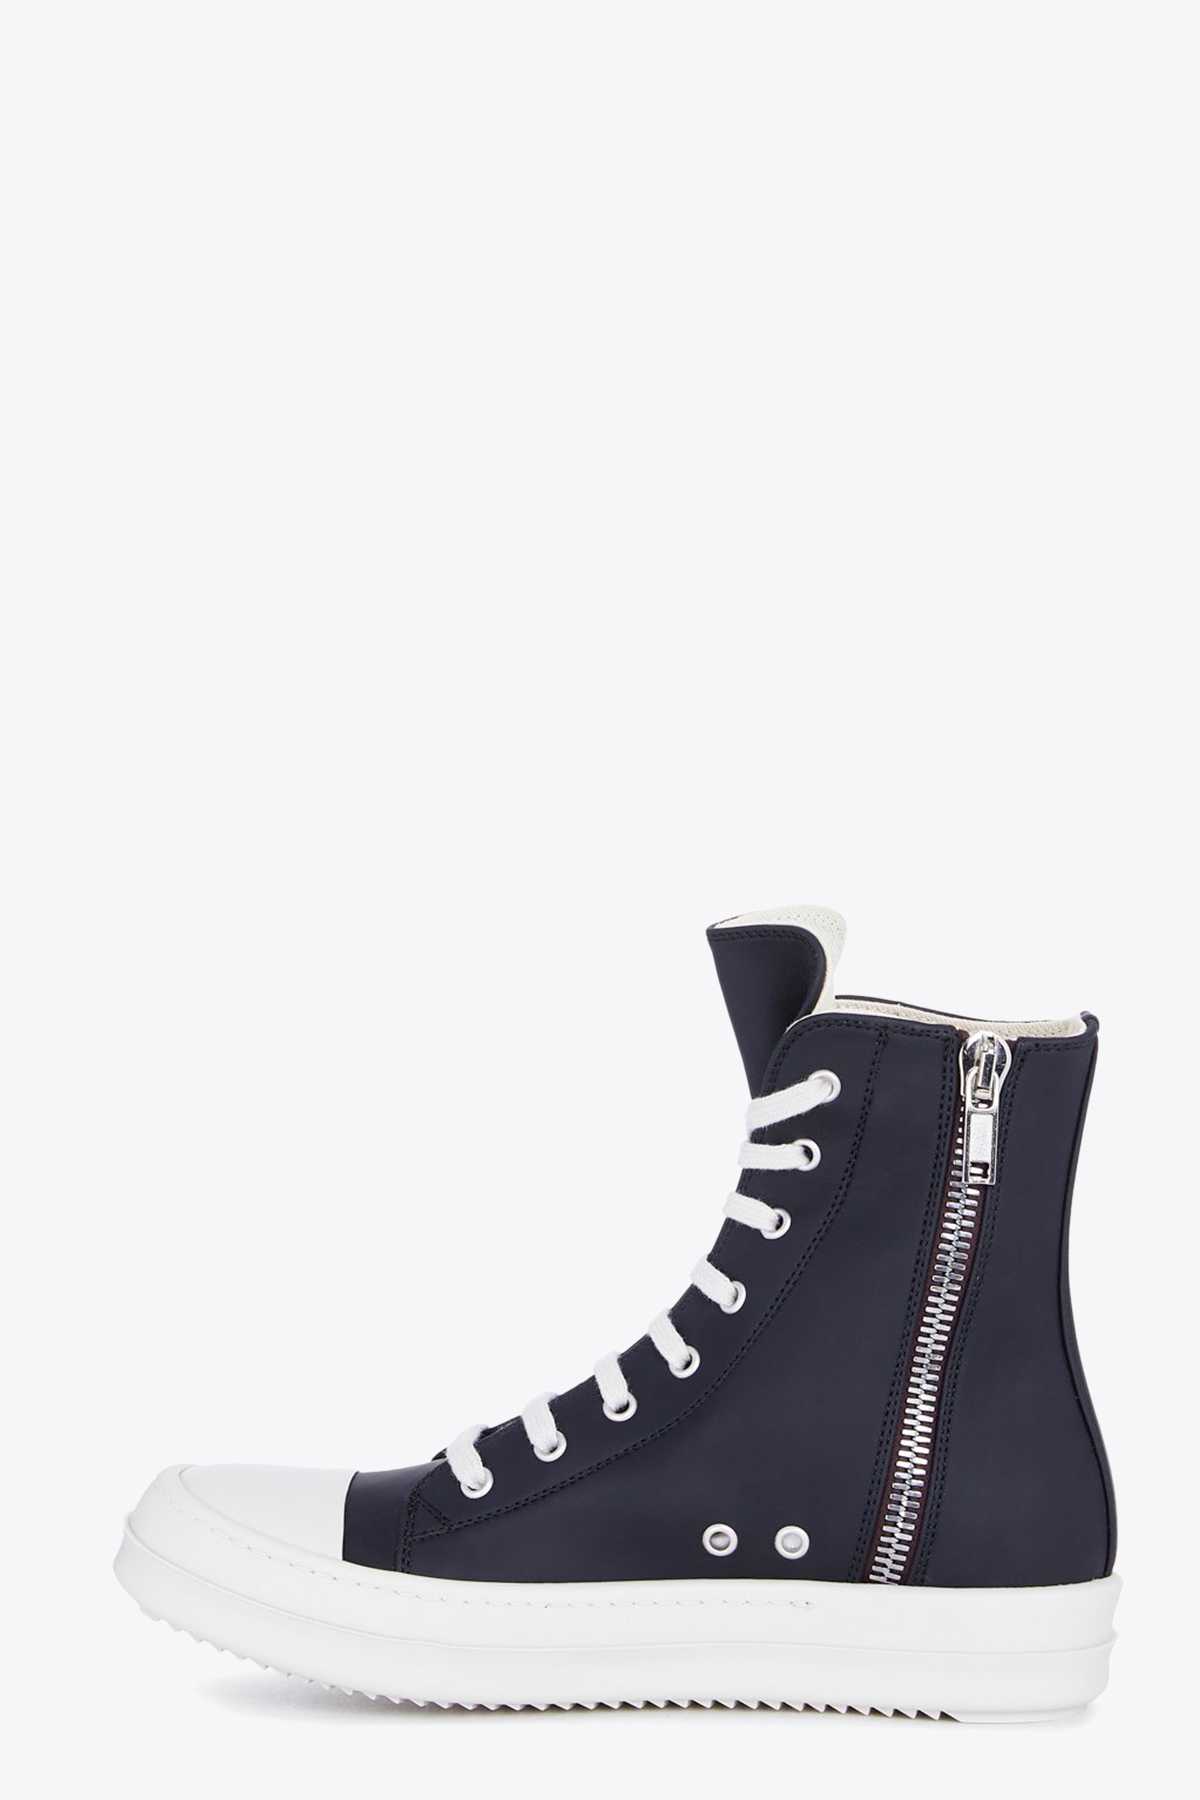 LACE-UP SNEAKERS RICK OWENS-DRKSHDW | 10000039 | DU20F1800 RUHP SNEAKERS91